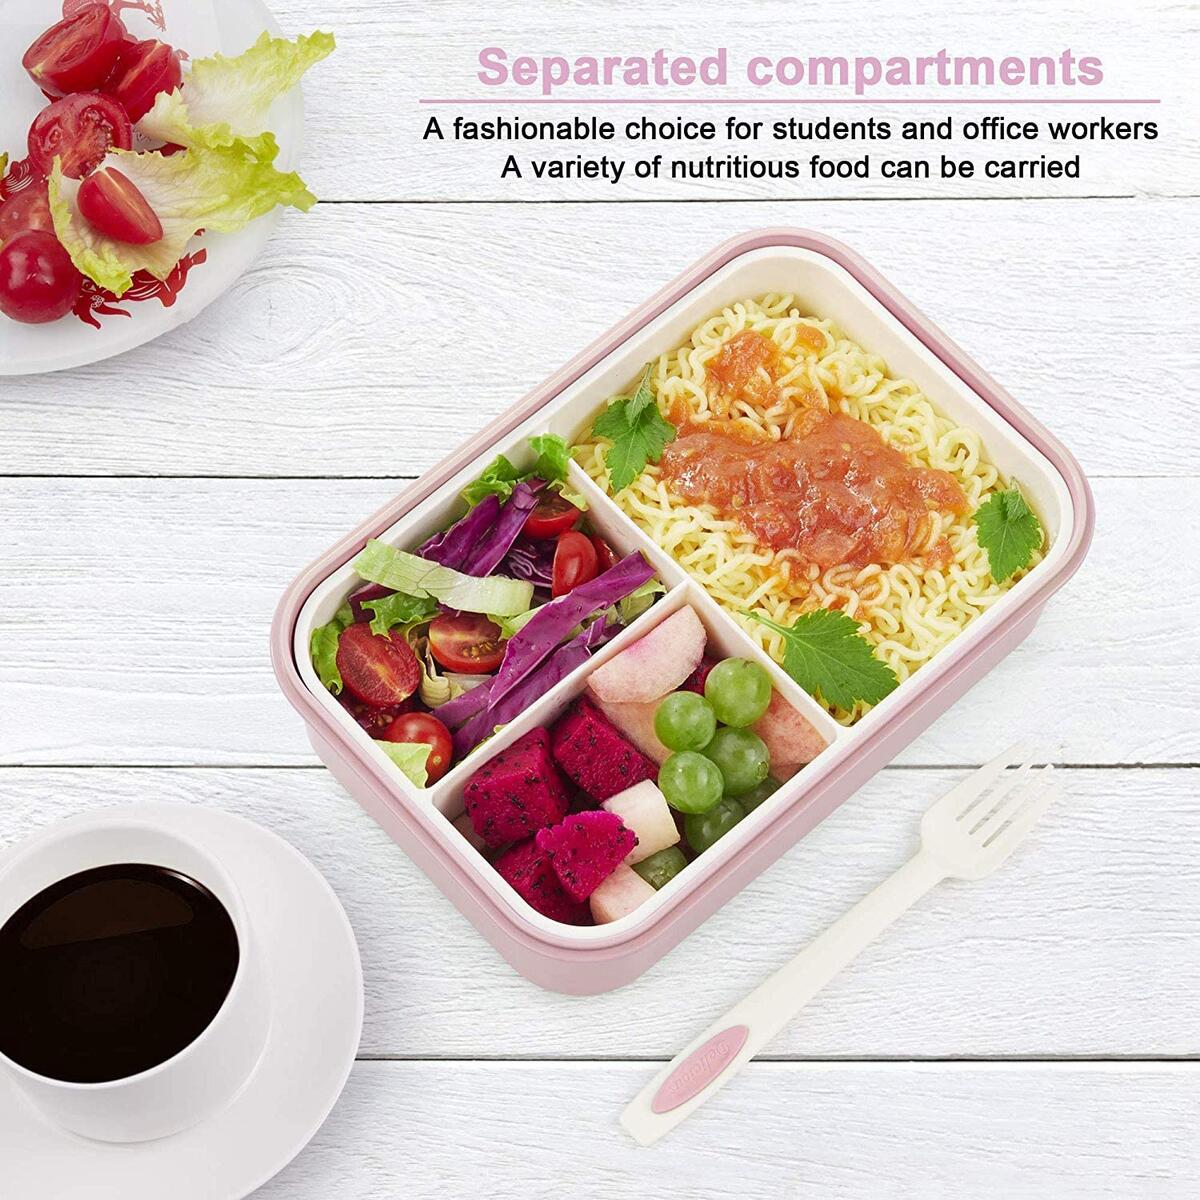 2 PACK Bento Lunch Containers For Kids & Adults, Lunch Box Container with Spoon & Fork,Reusable 3-Compartment Divided Food Storage Container Boxes, On-the-Go Meal and Snack Packing(Green+Red)